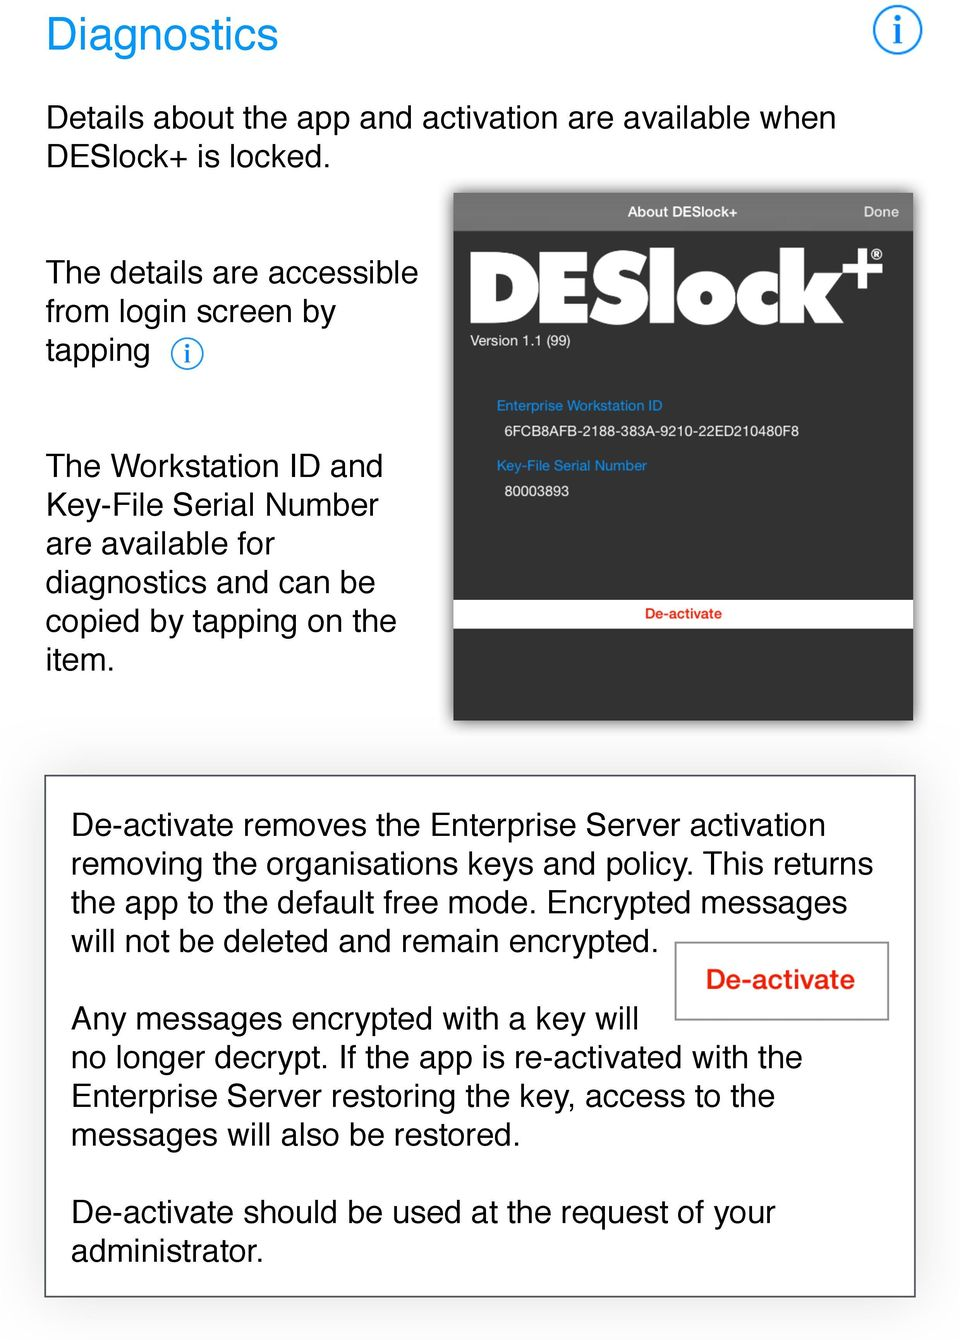 DESlock+ Mobile allows you to encrypt and decrypt and attachments